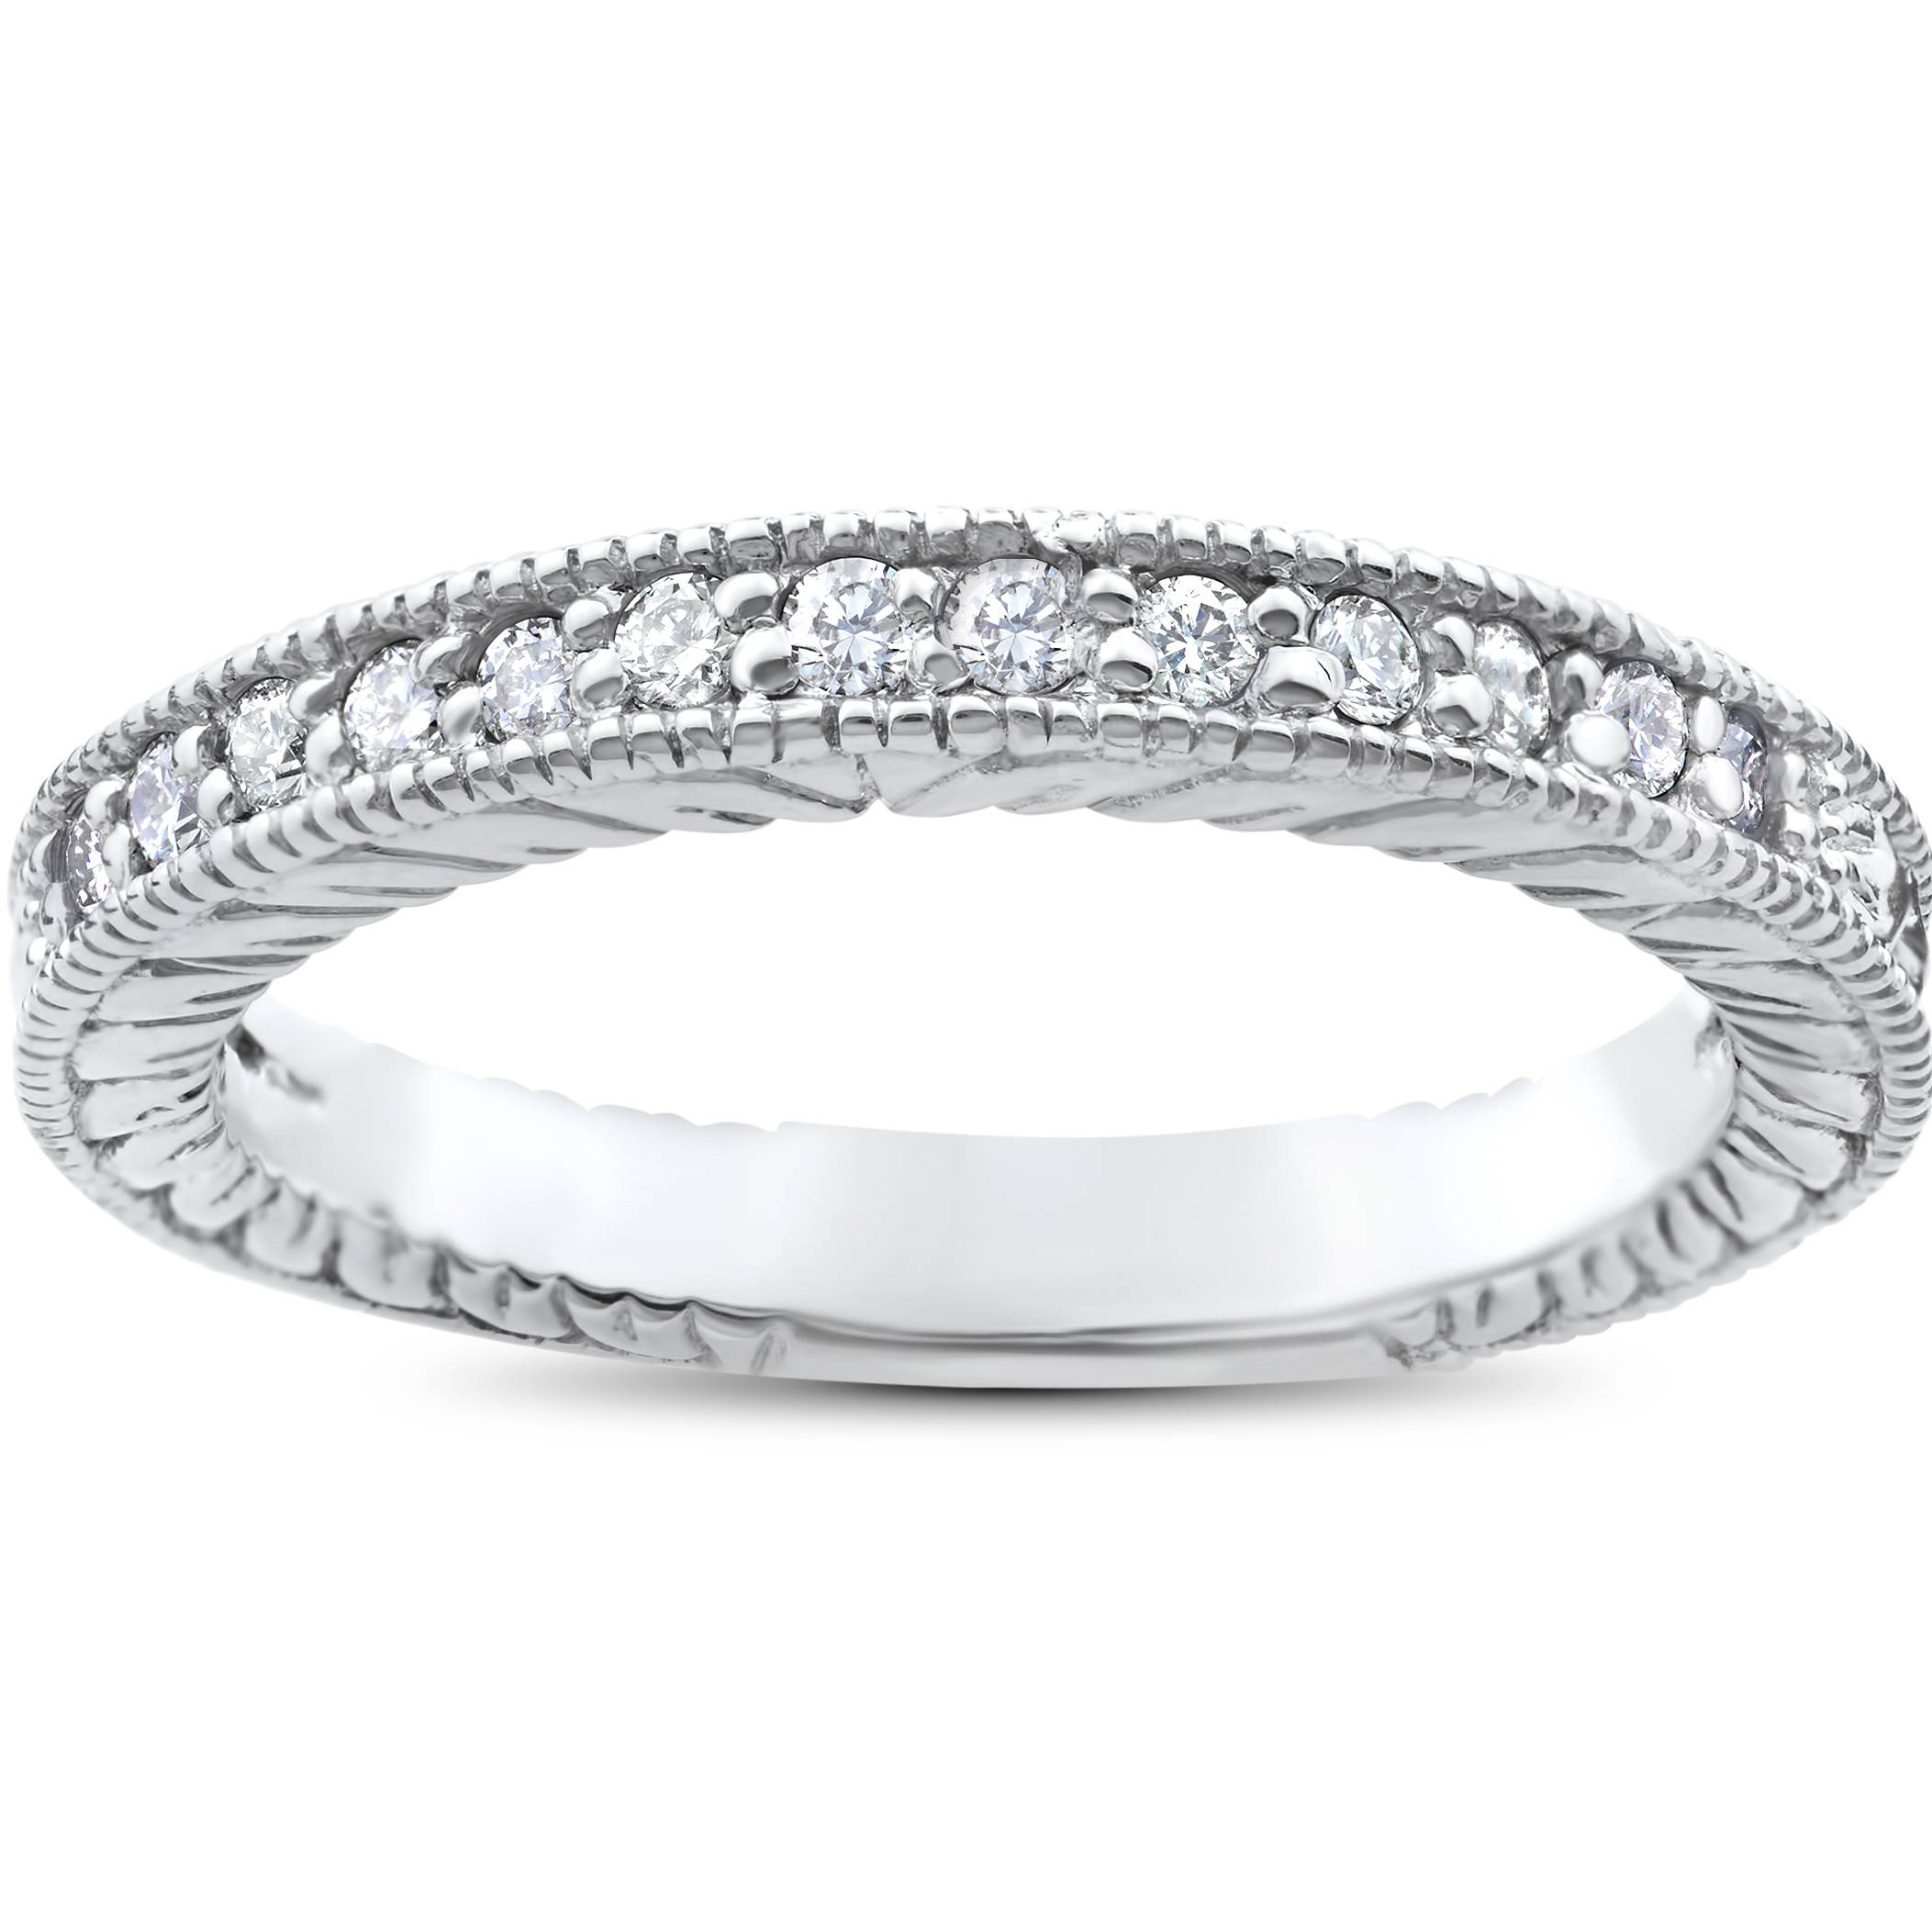 White Gold Wedding Rings For Women With Diamonds 1/5ct Heirloom Diamond...